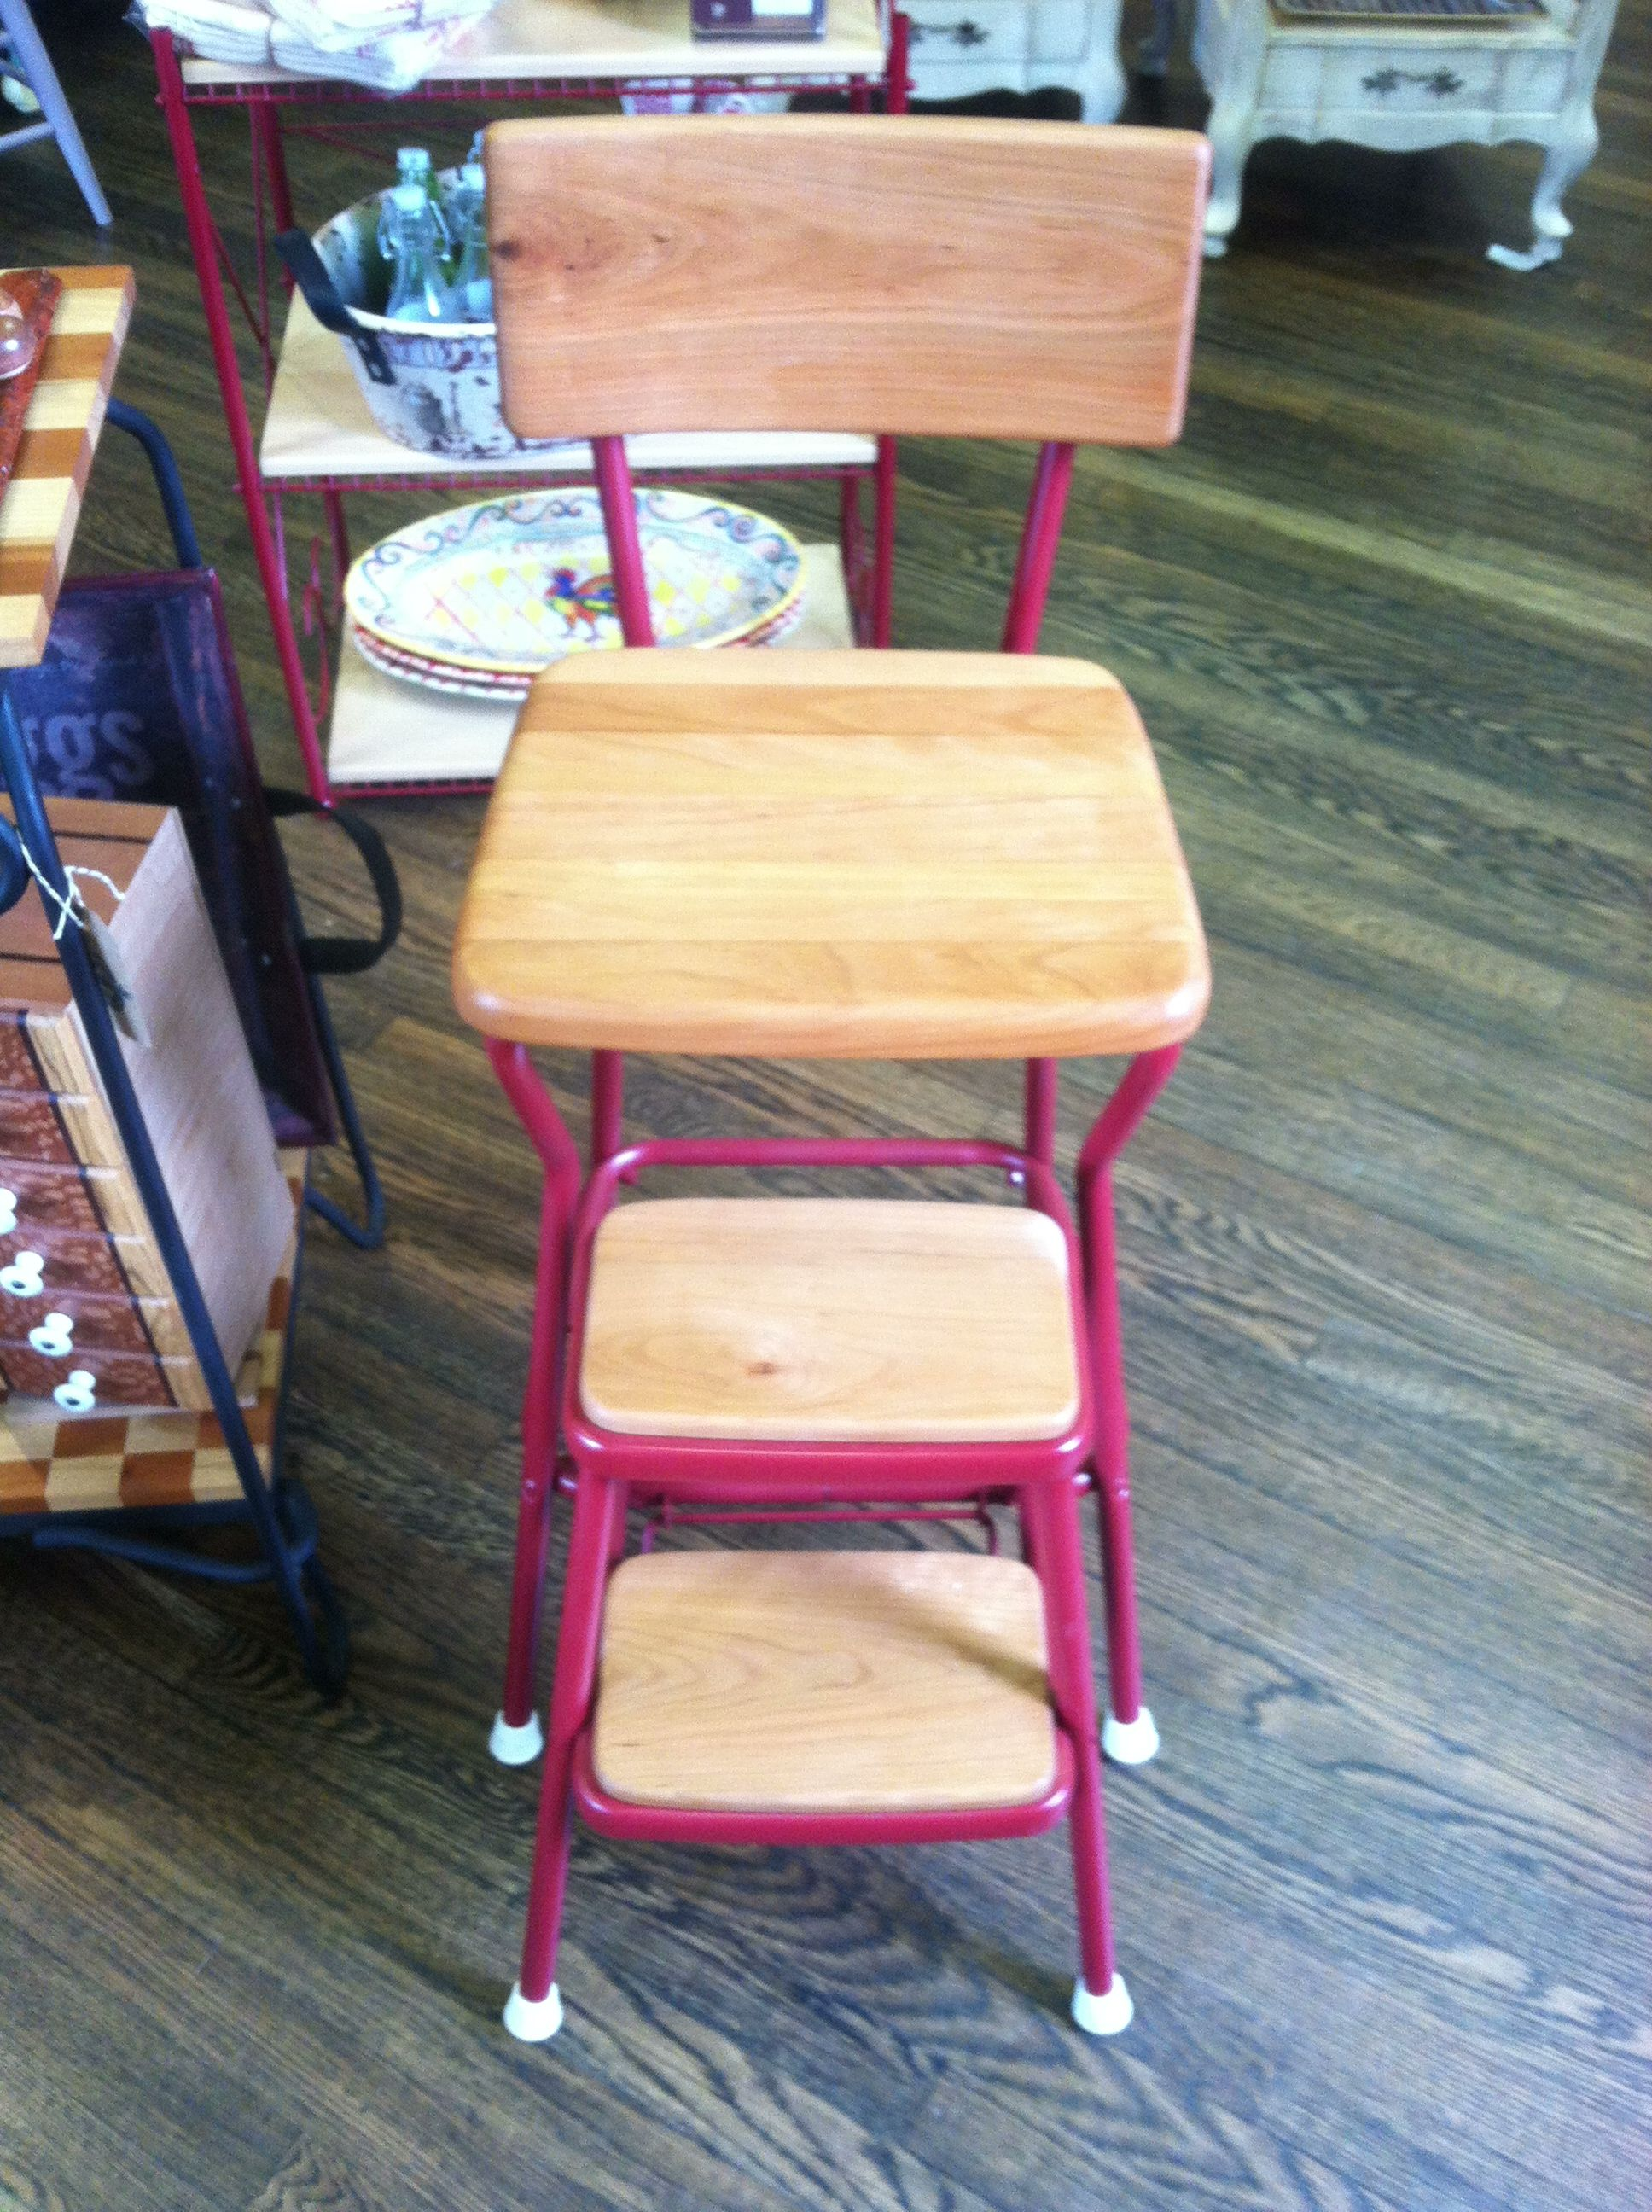 Vintage step stool upcycled with a cherry seat and back